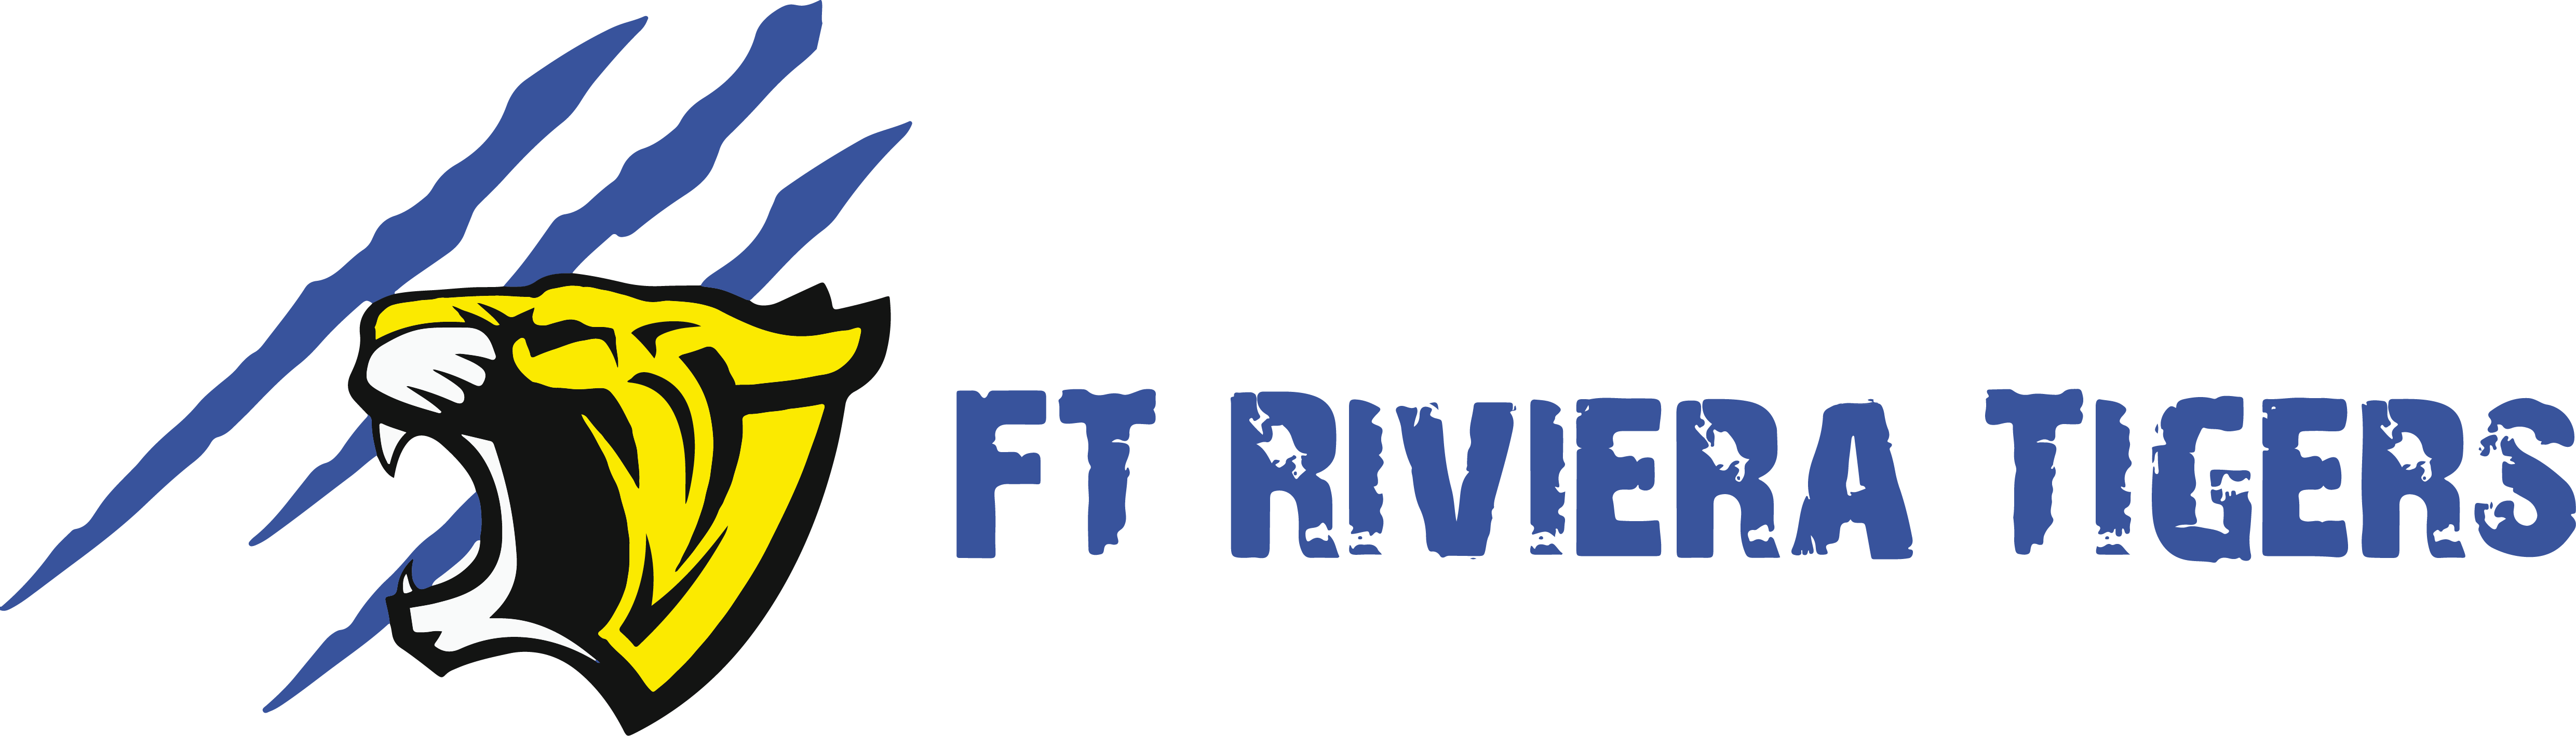 FT Riviera Tigers